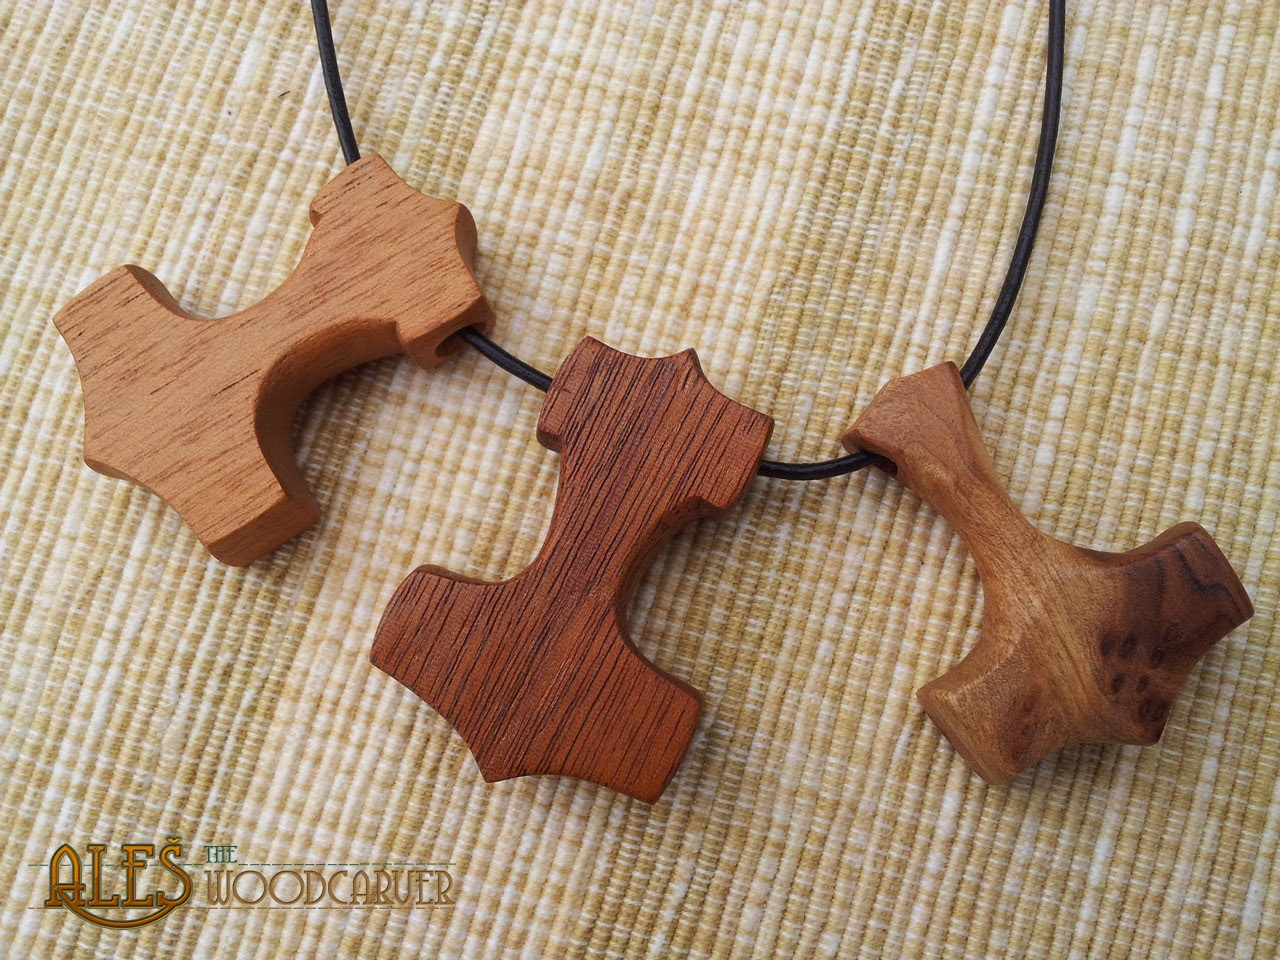 about designs new pounamu meanings mountain carving necklace greenstone more zealand jade wood info twist and